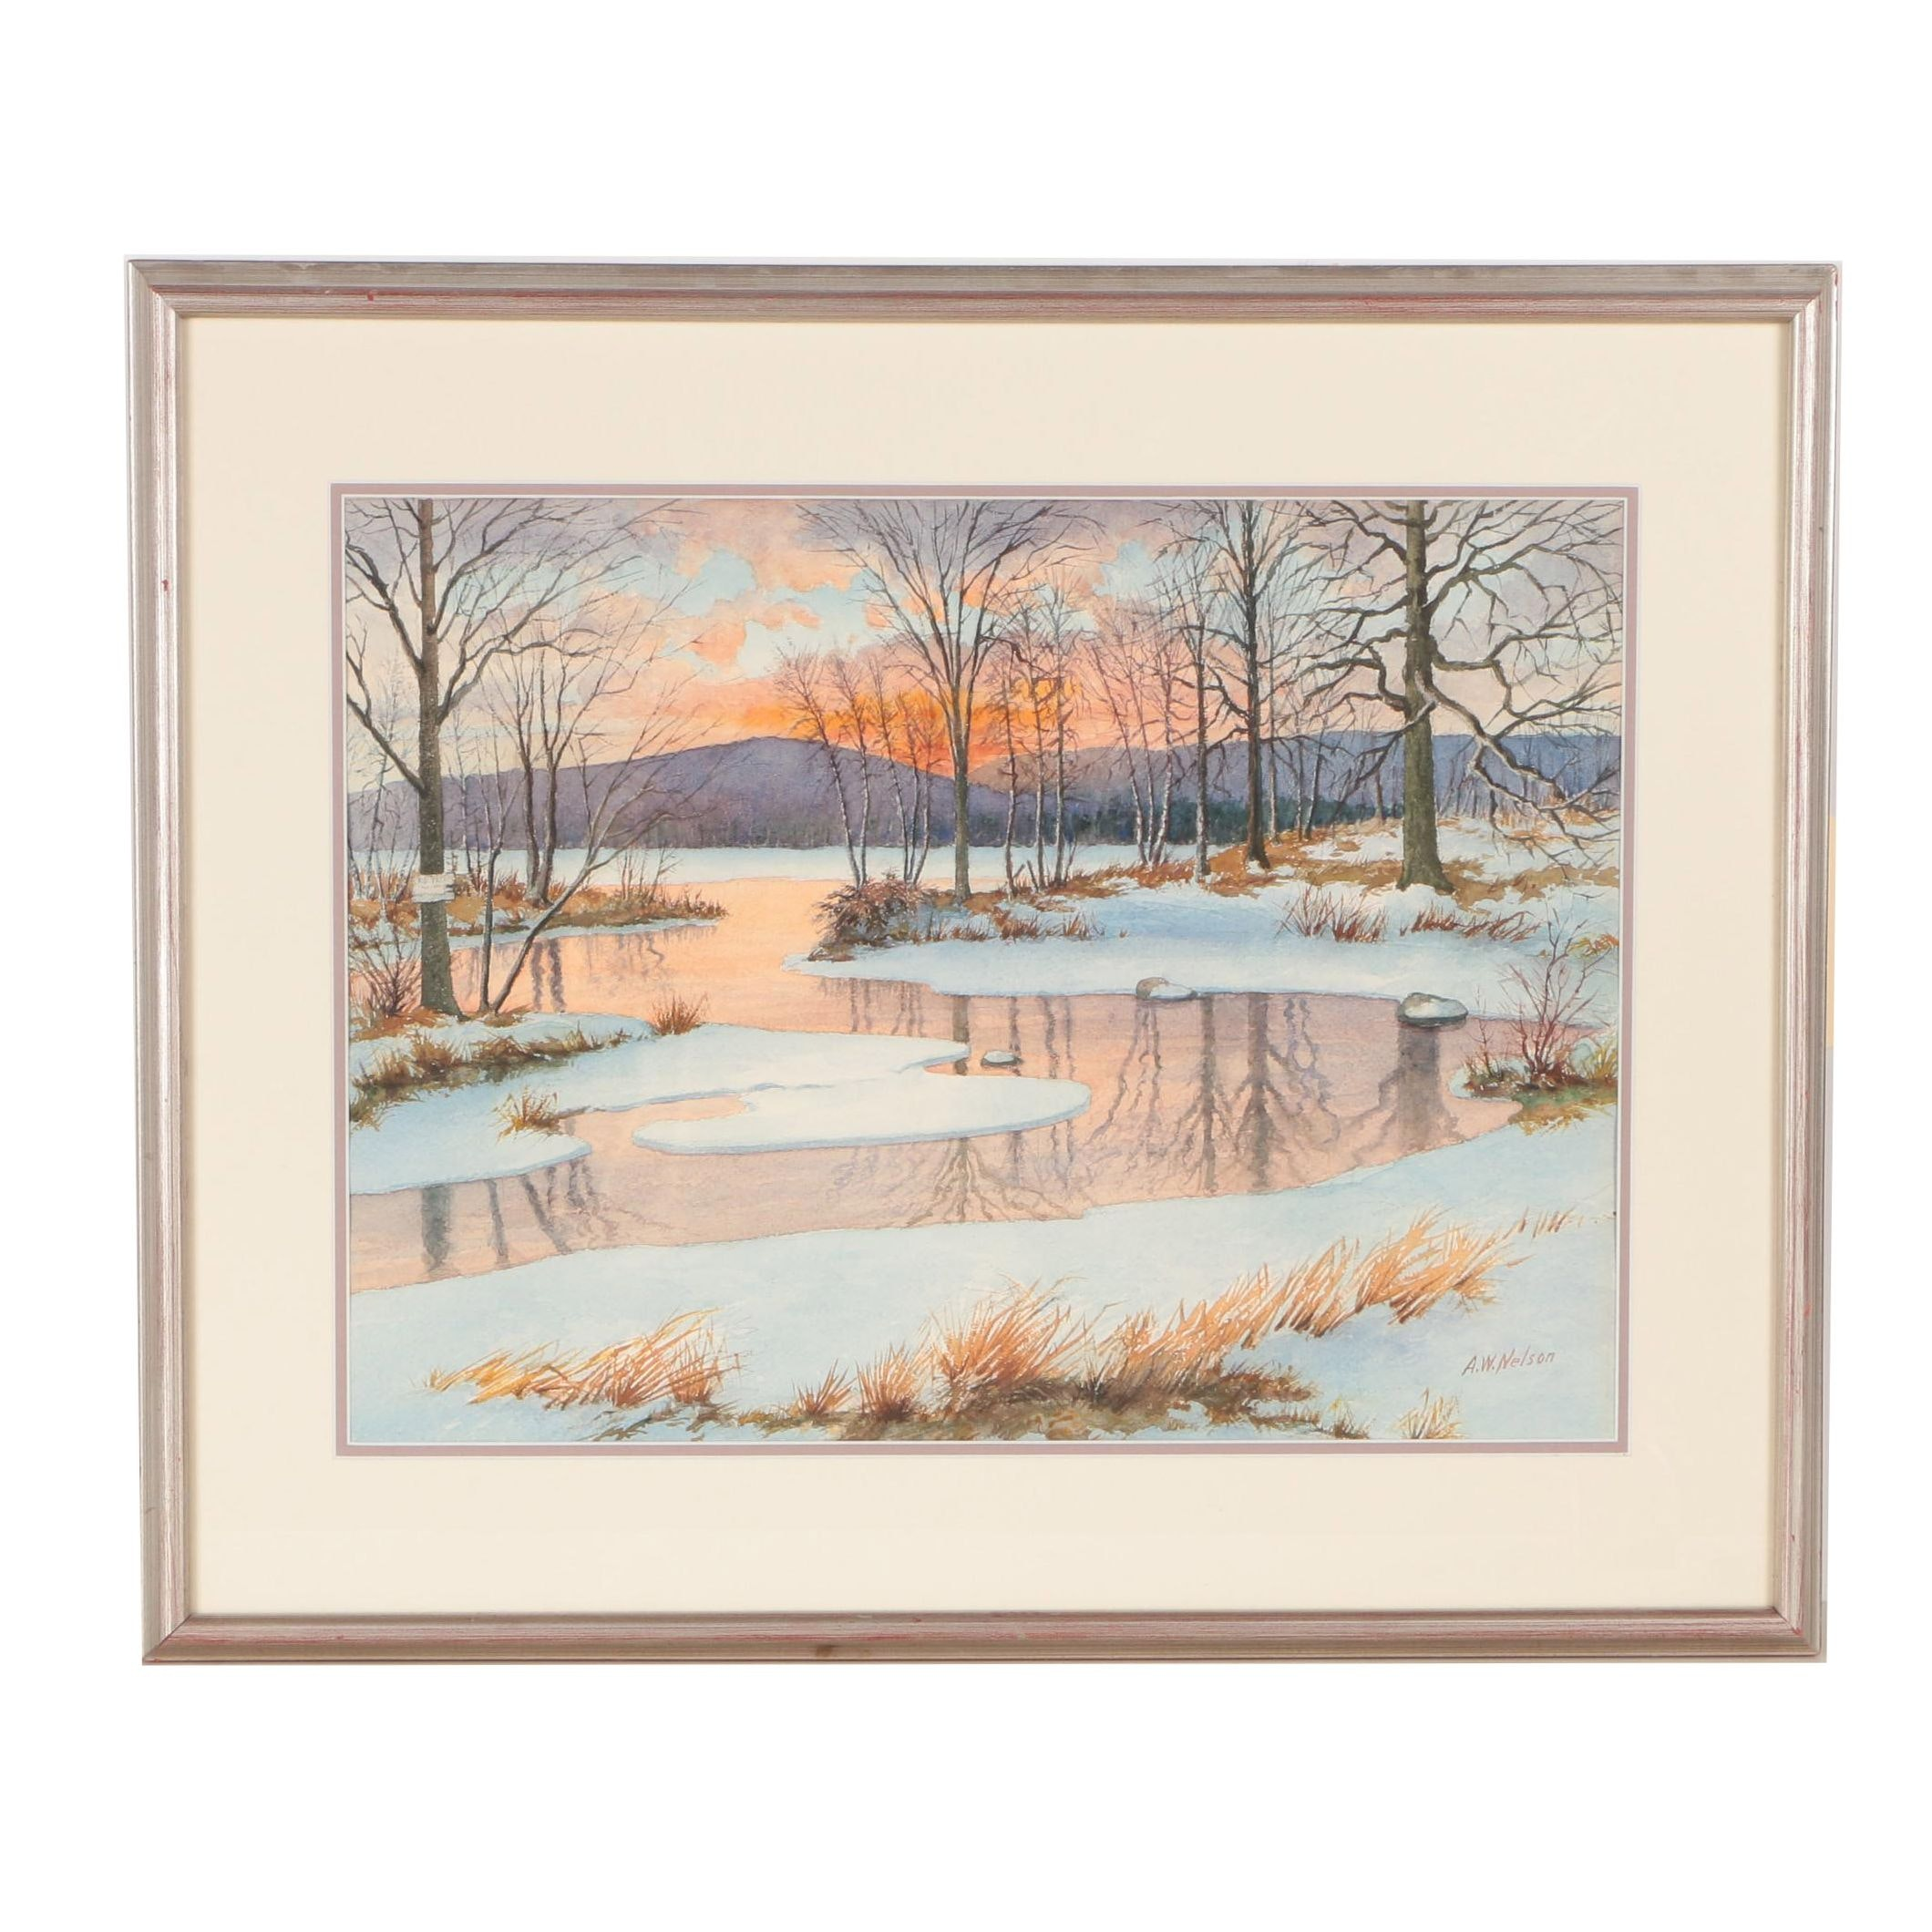 A.W. Nelson Landscape Watercolor Painting